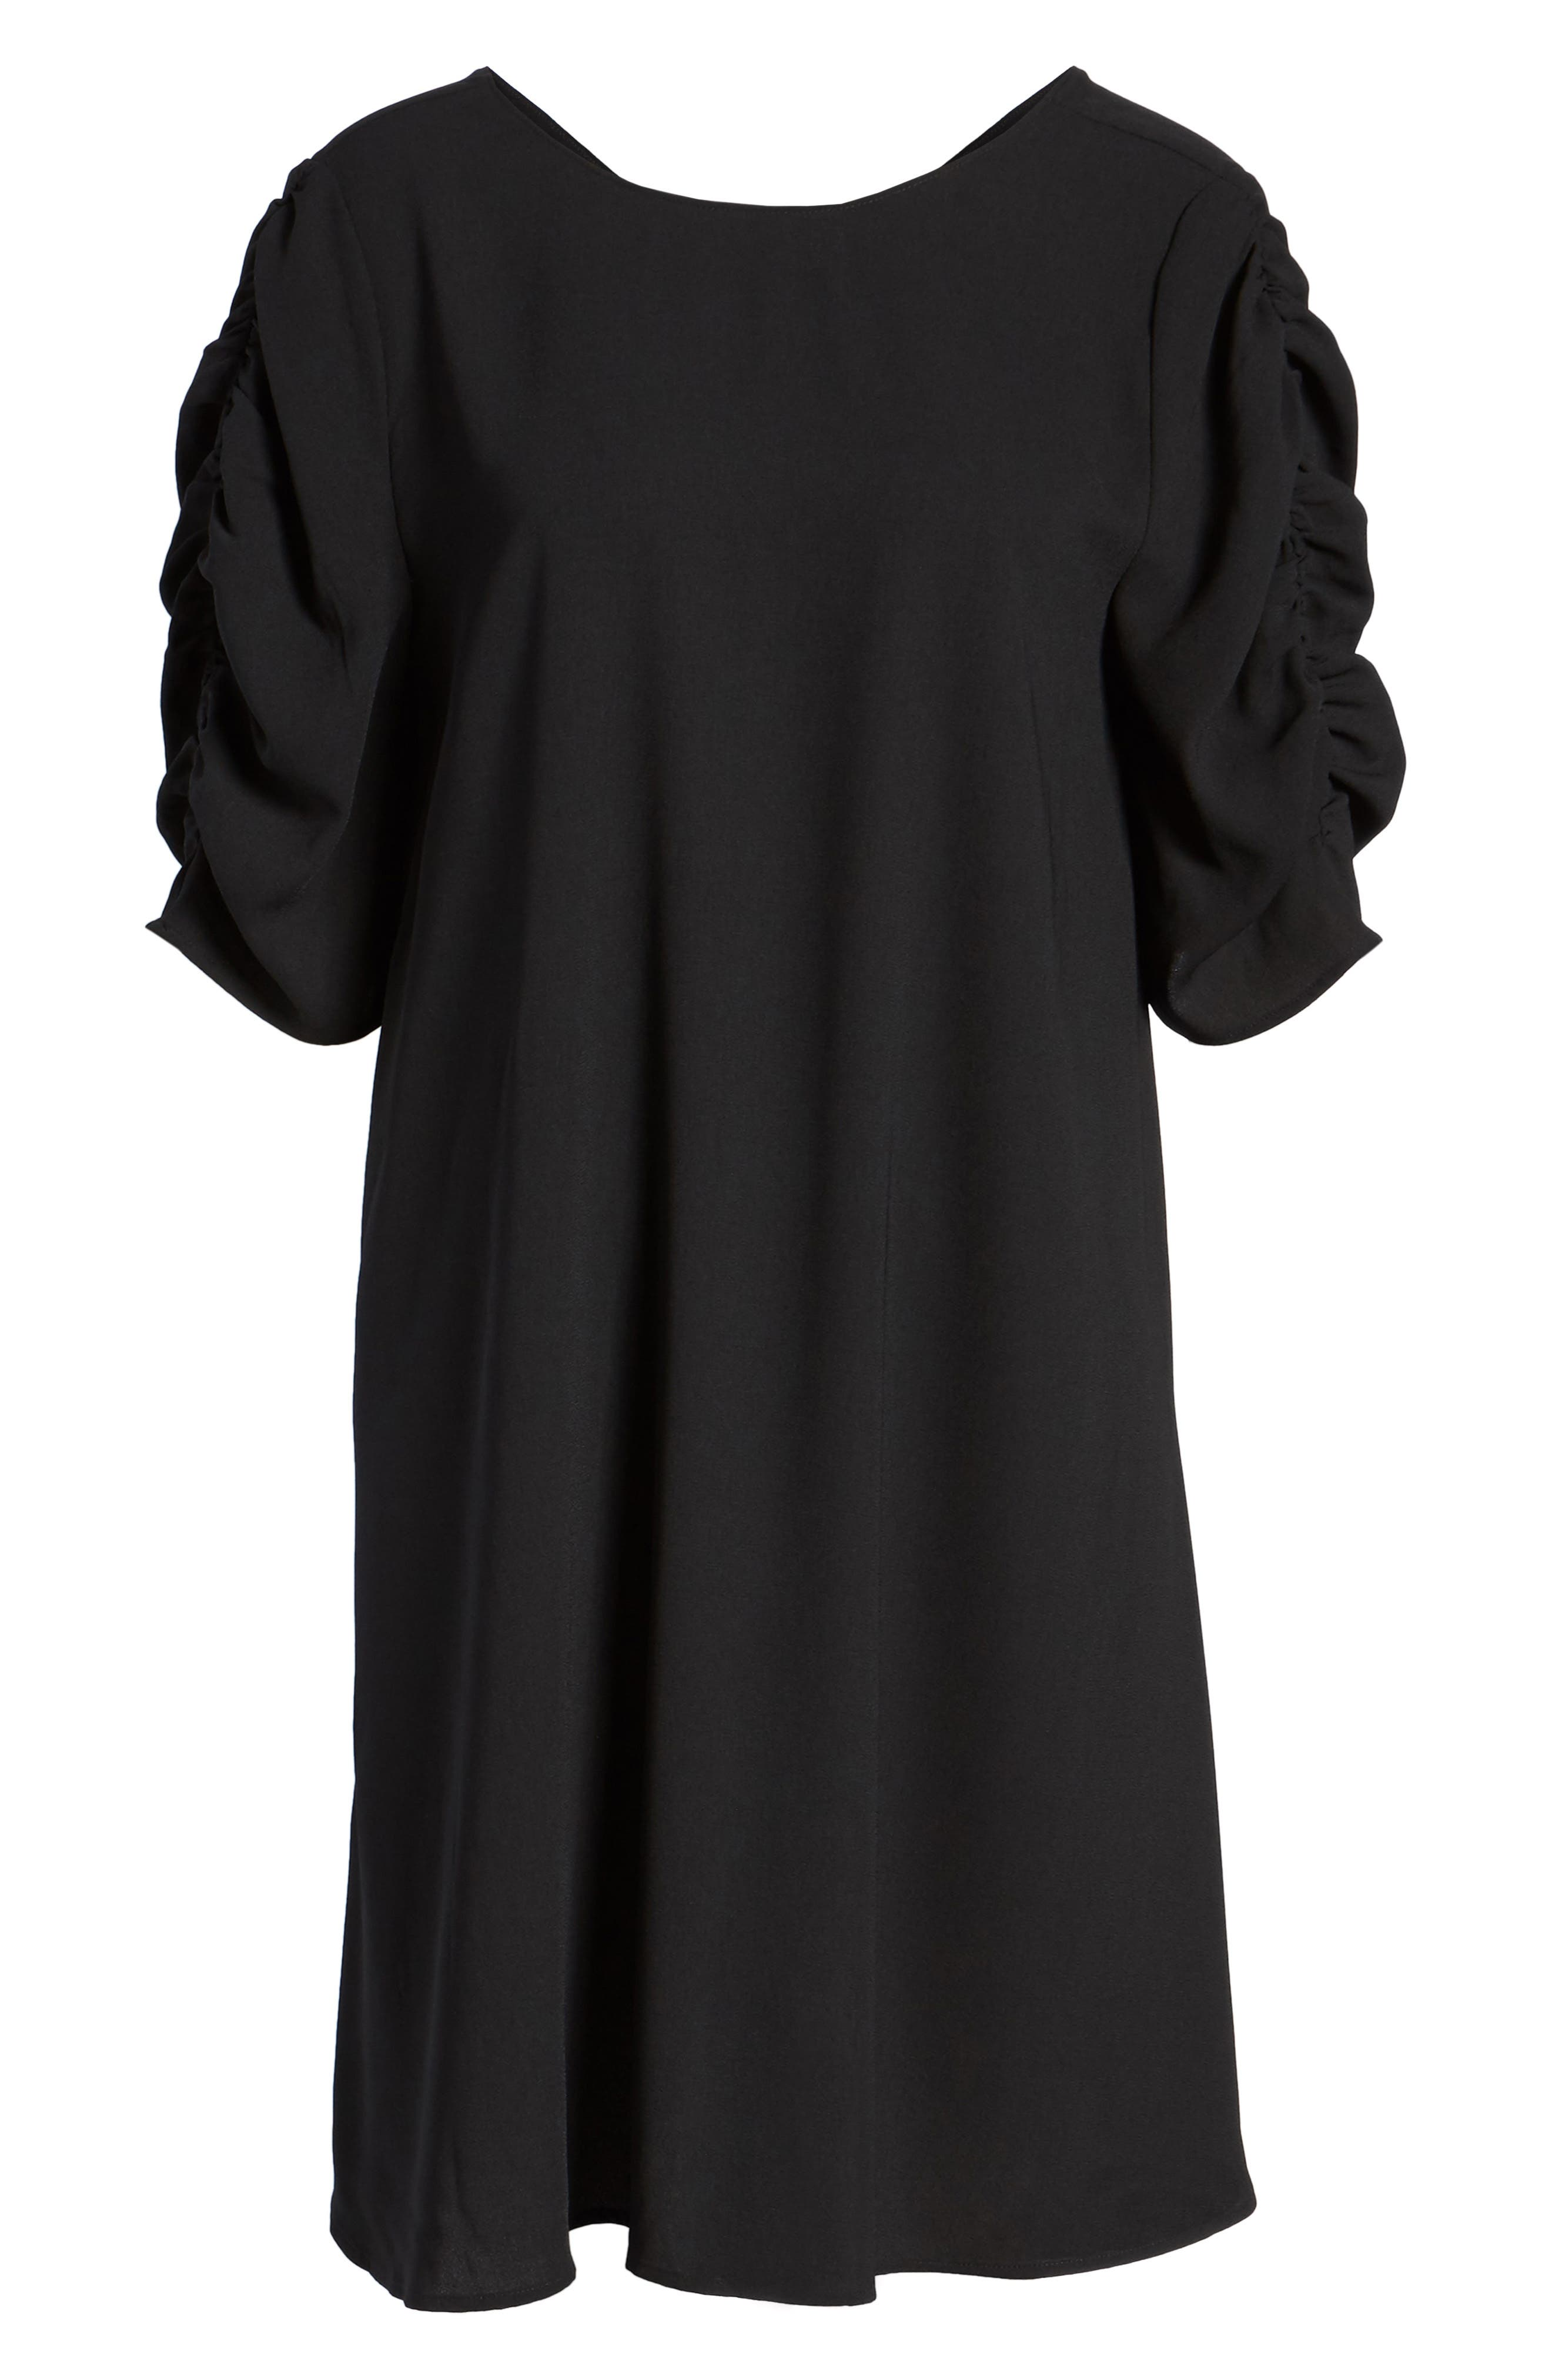 Ruched Sleeve Crepe Dress,                             Alternate thumbnail 6, color,                             001